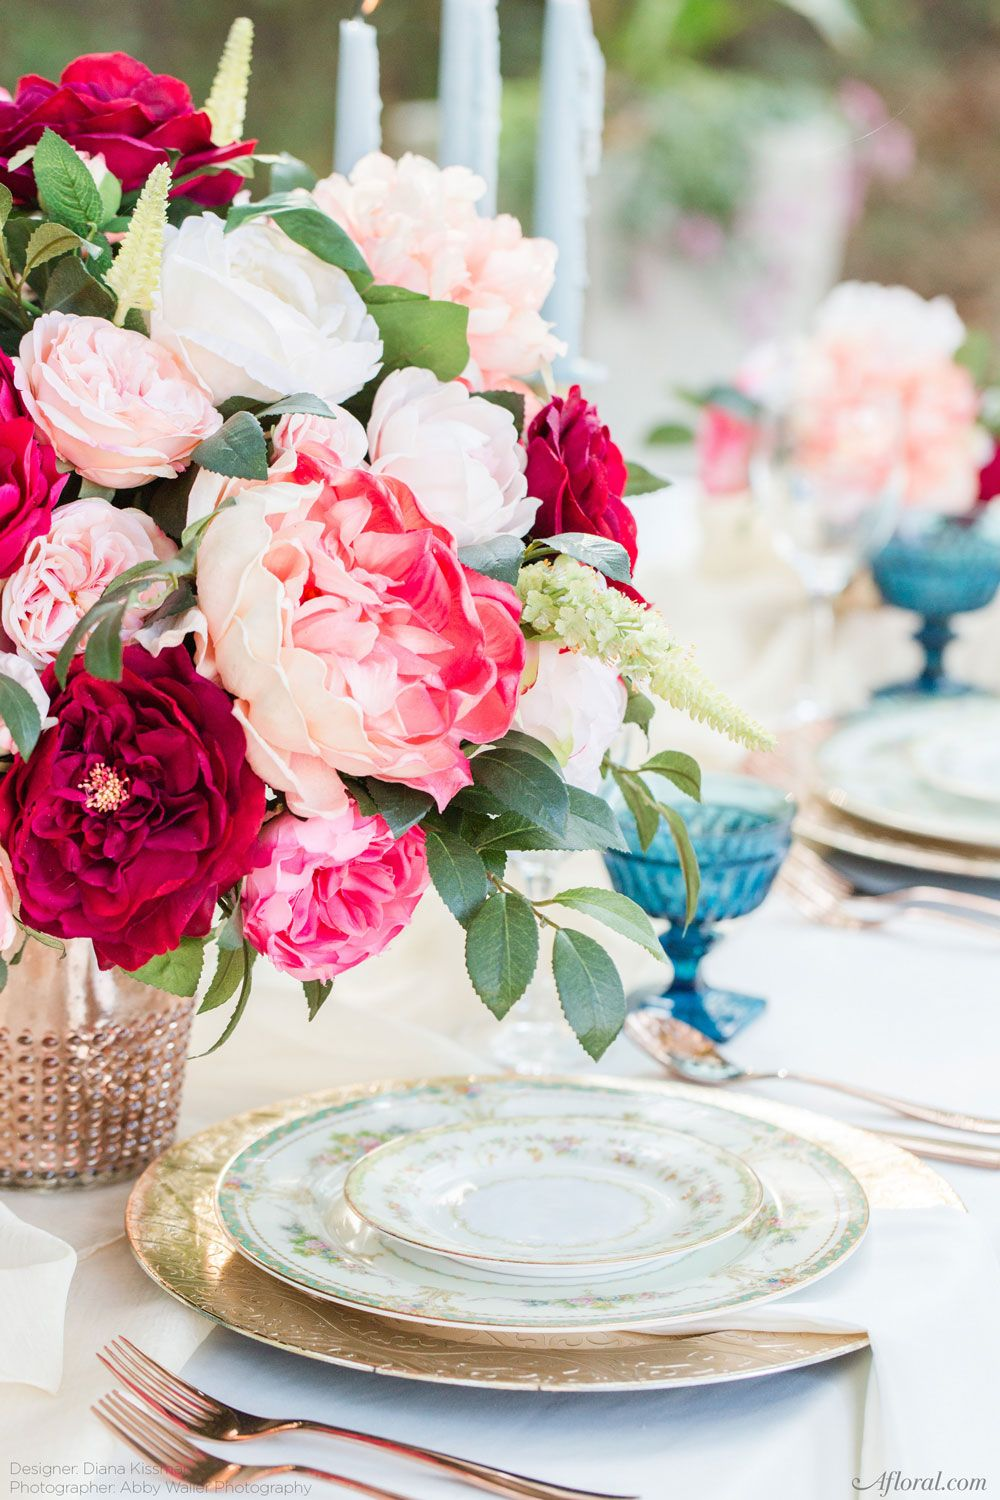 Create Lasting Centerpieces With Silk Flowers From Afloral